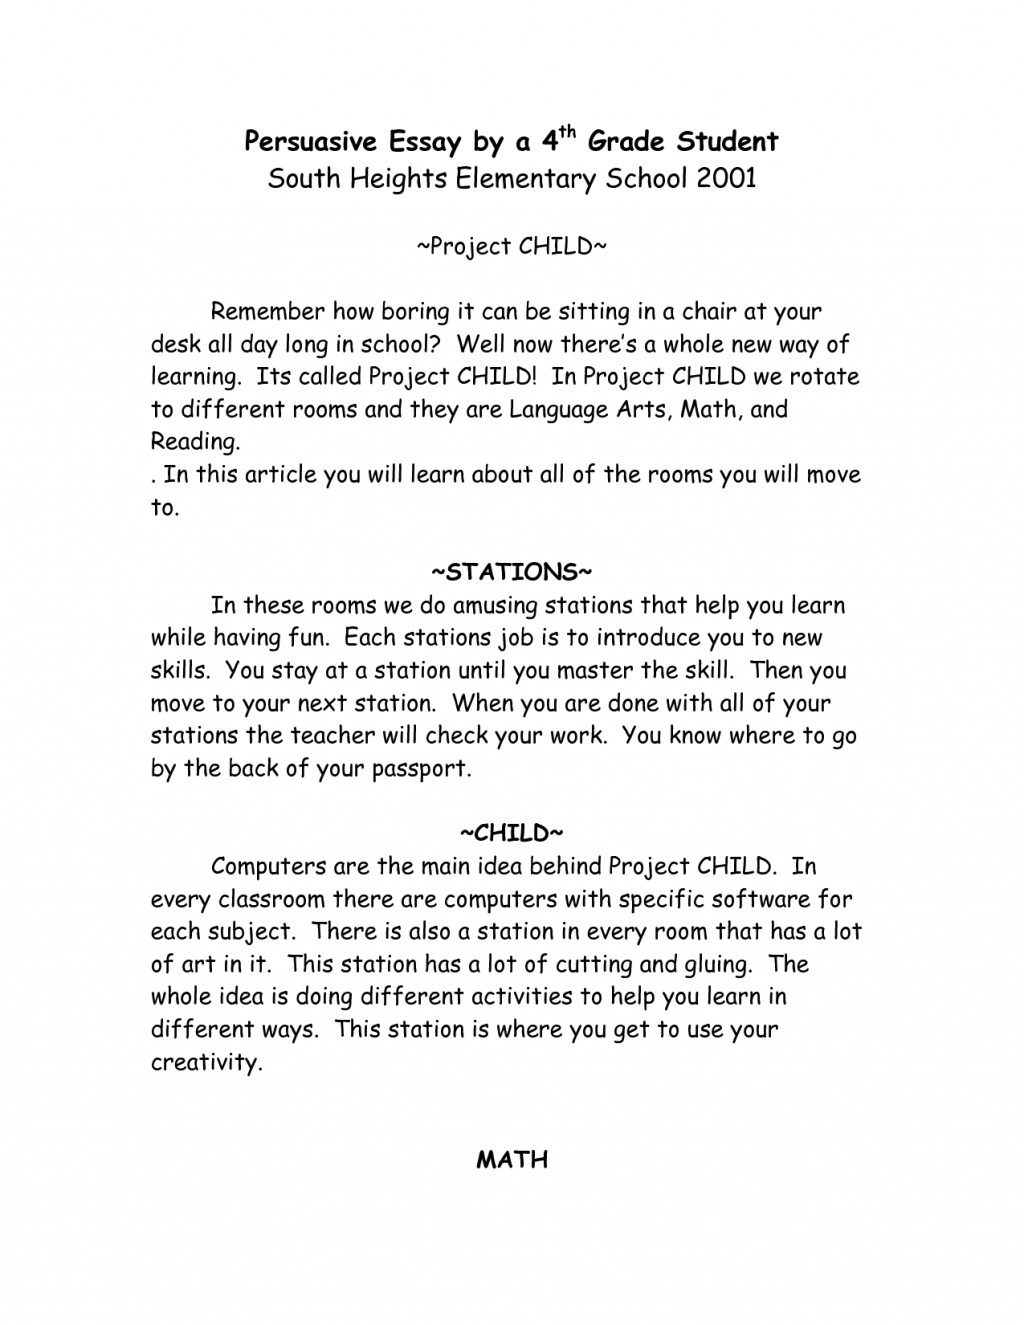 014 How To Start An Essay 2nmmxqusgx Amazing With A Hook Quote Analysis On Book Large